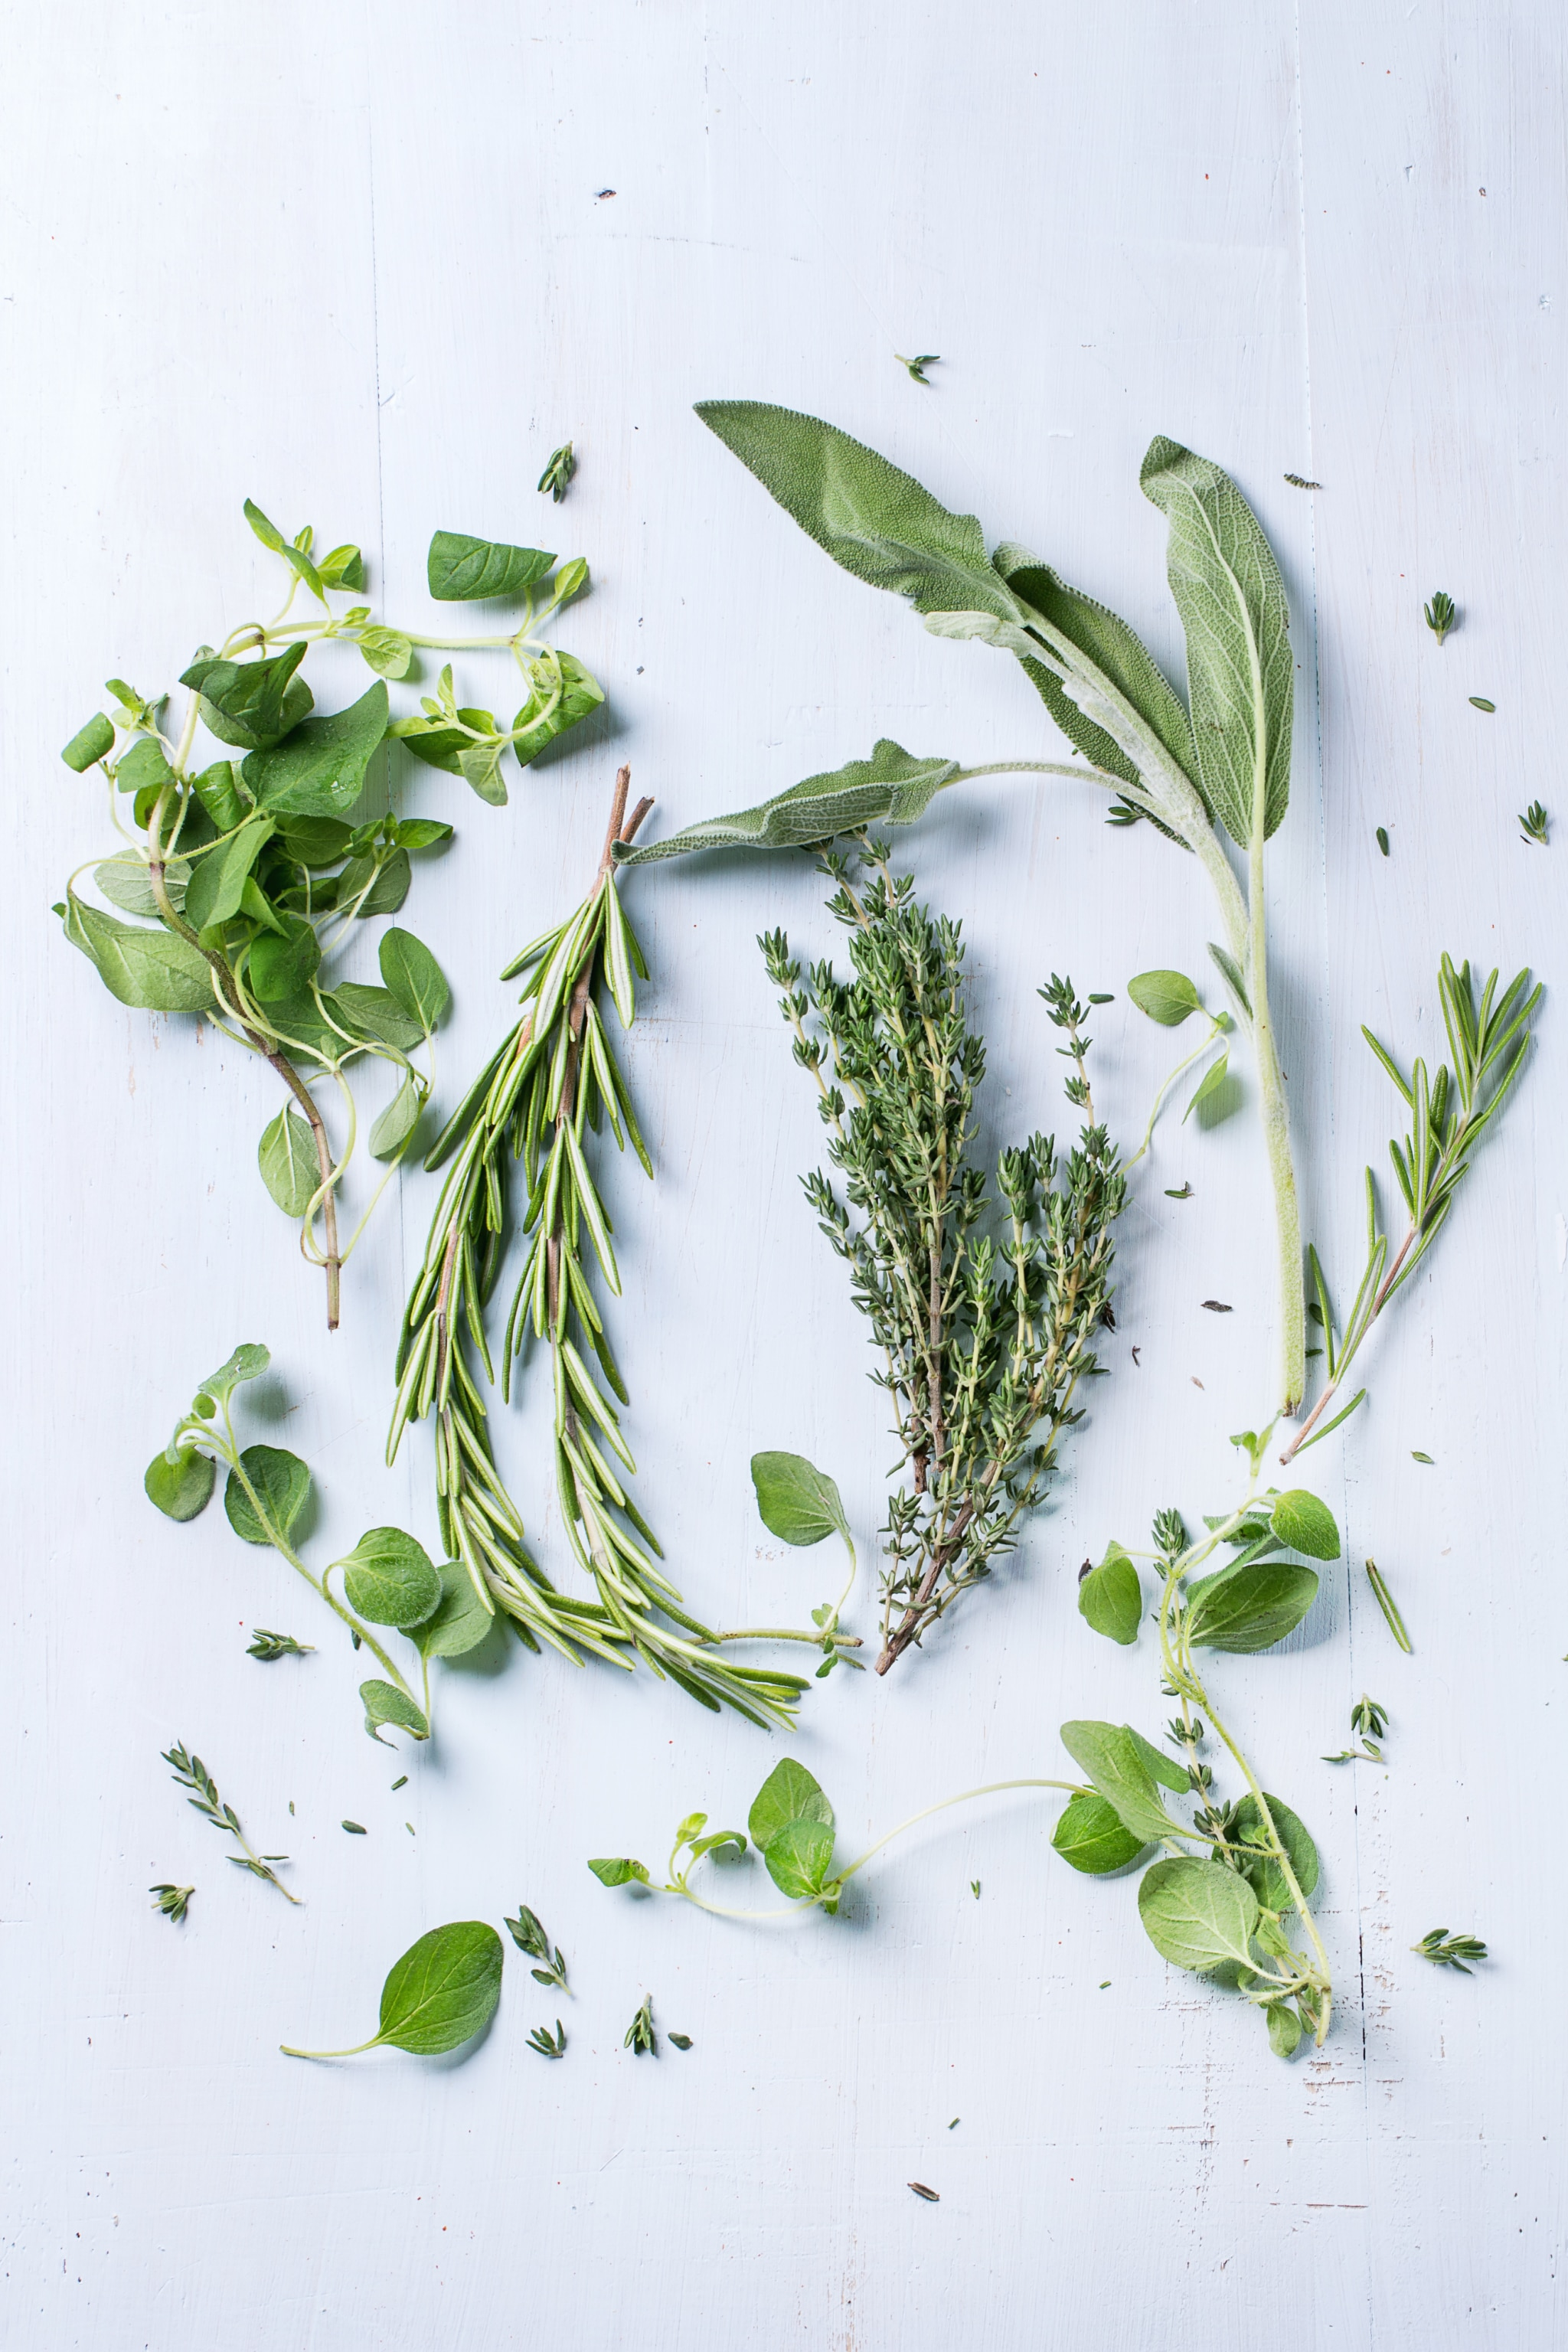 Assortment of fresh herbs